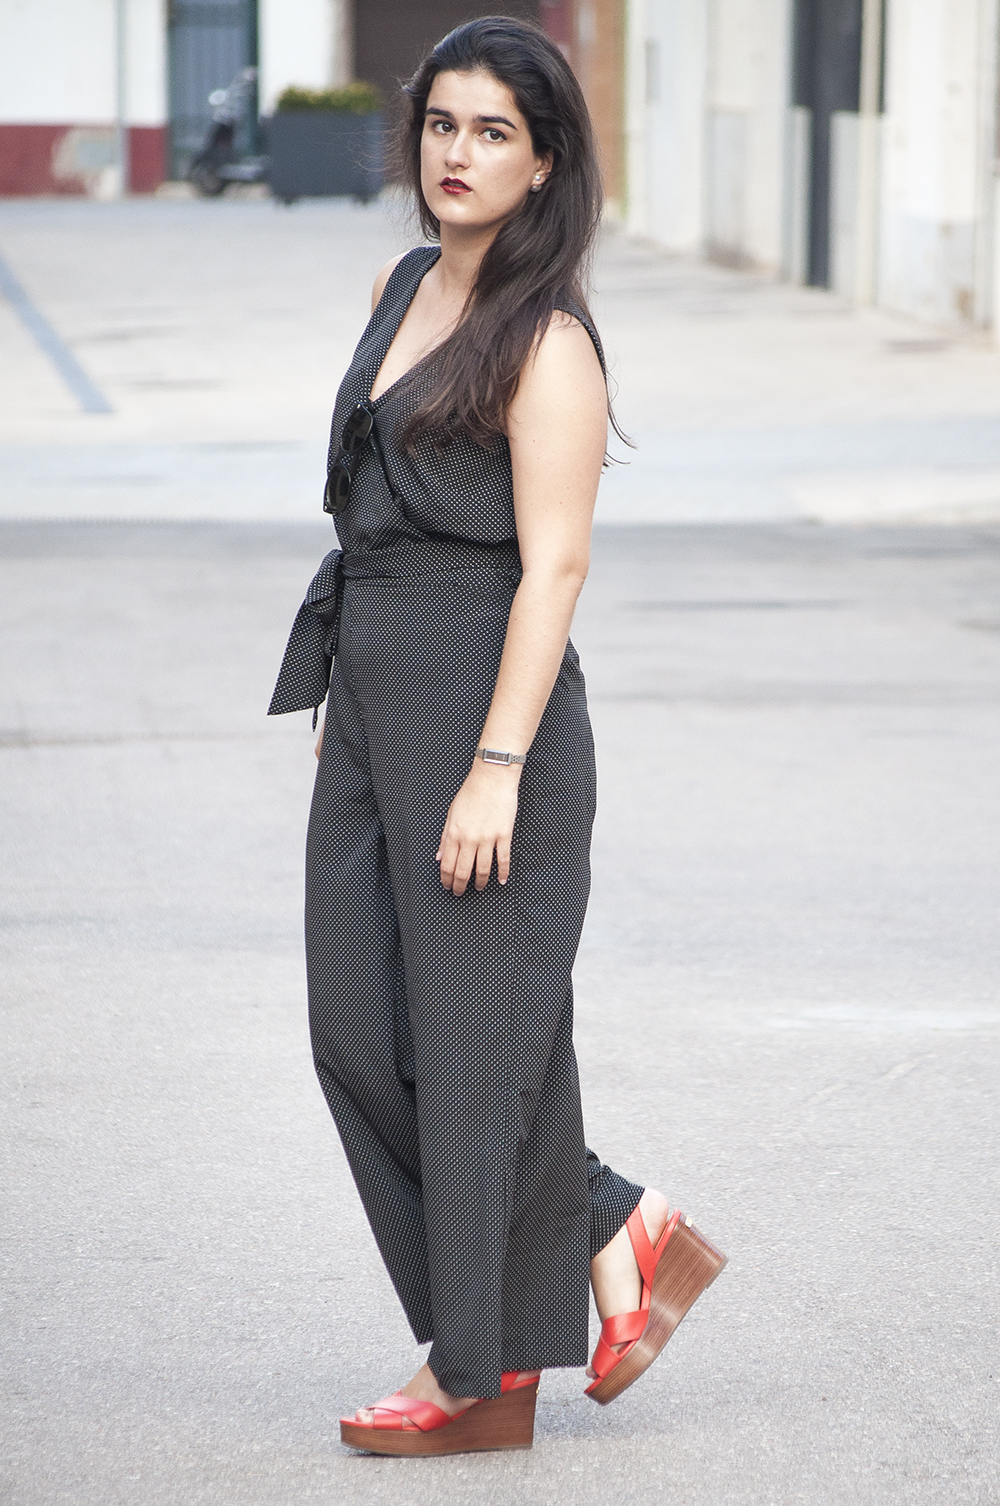 something fashion blogger influencer streetstyle spain valencia outfits summer jumpsuit inspiration_0581